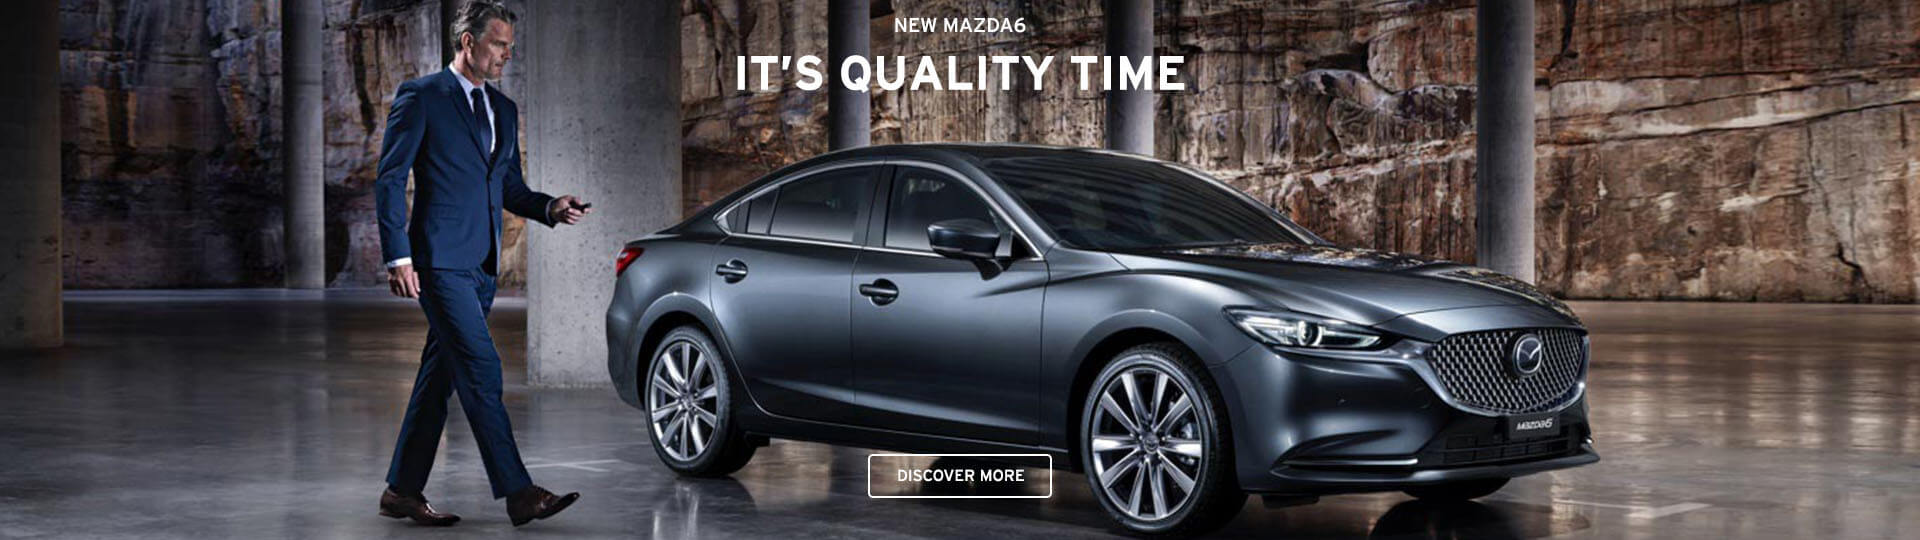 New Mazda 6 in grey